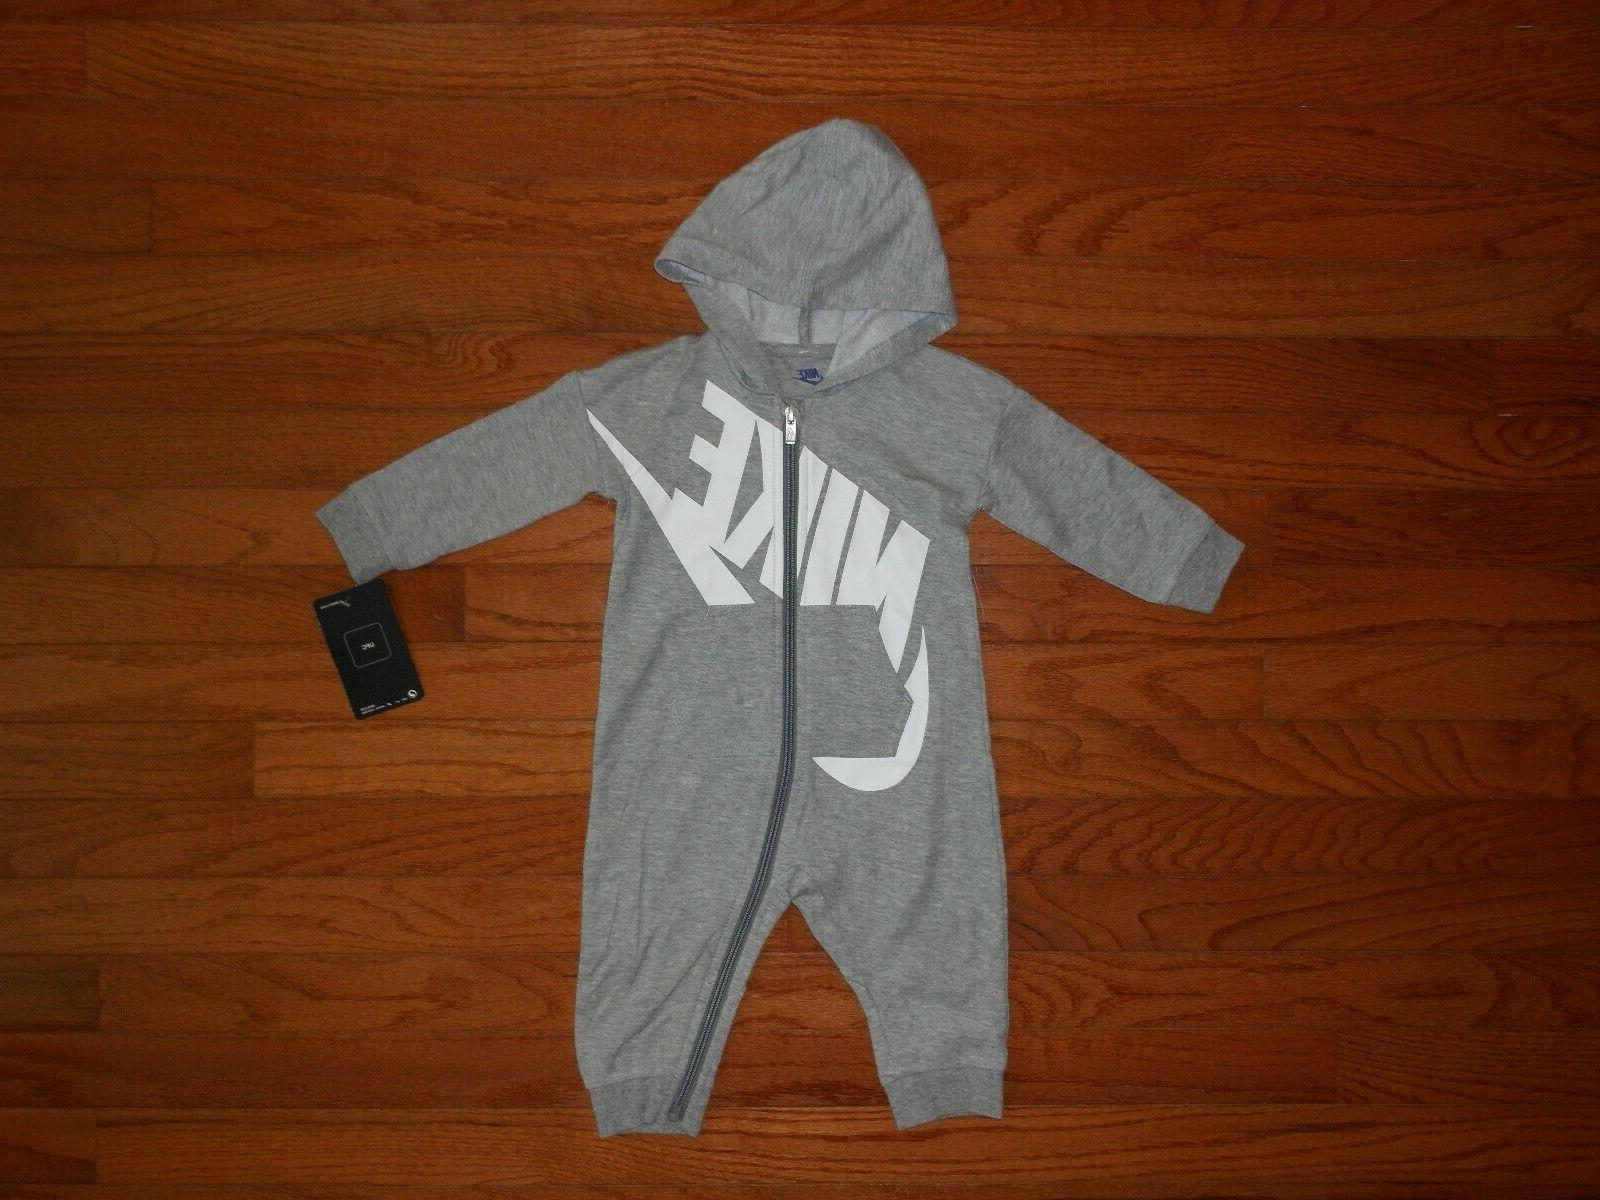 nwt baby boys grey heather romper outfit